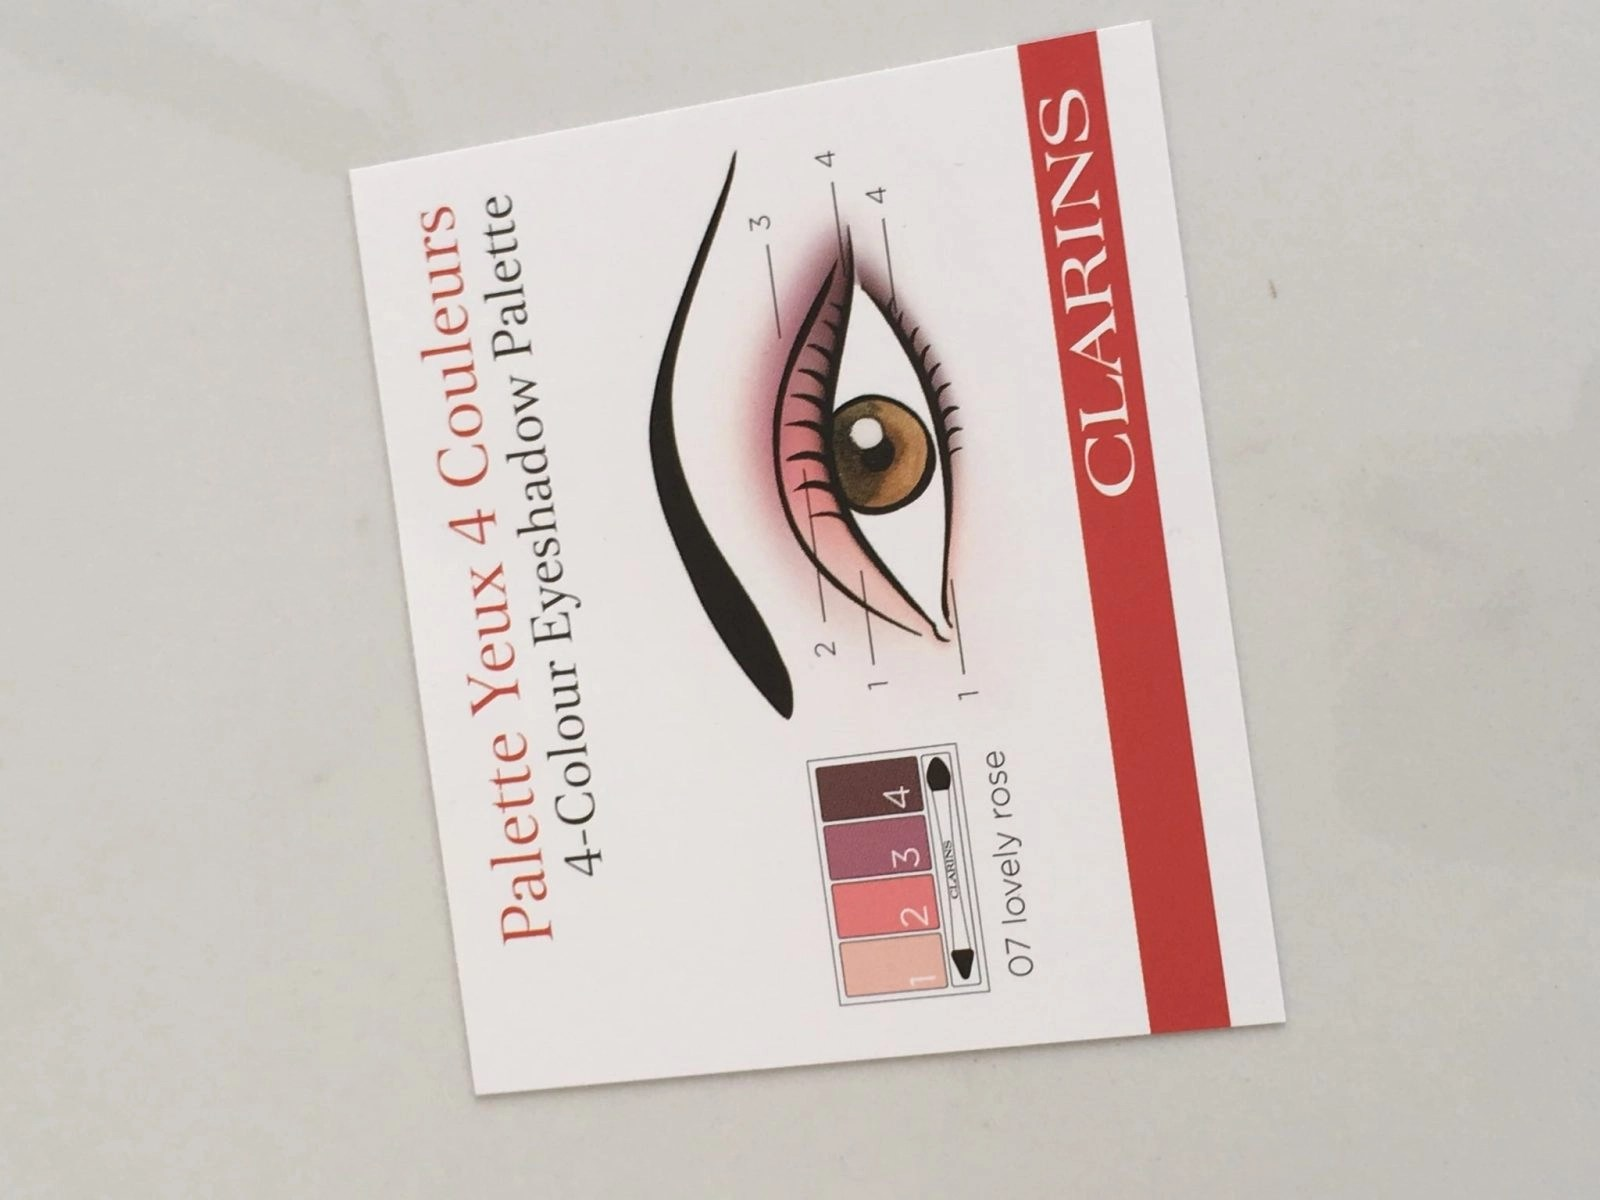 Eyeshadow Palette Card with eye look options